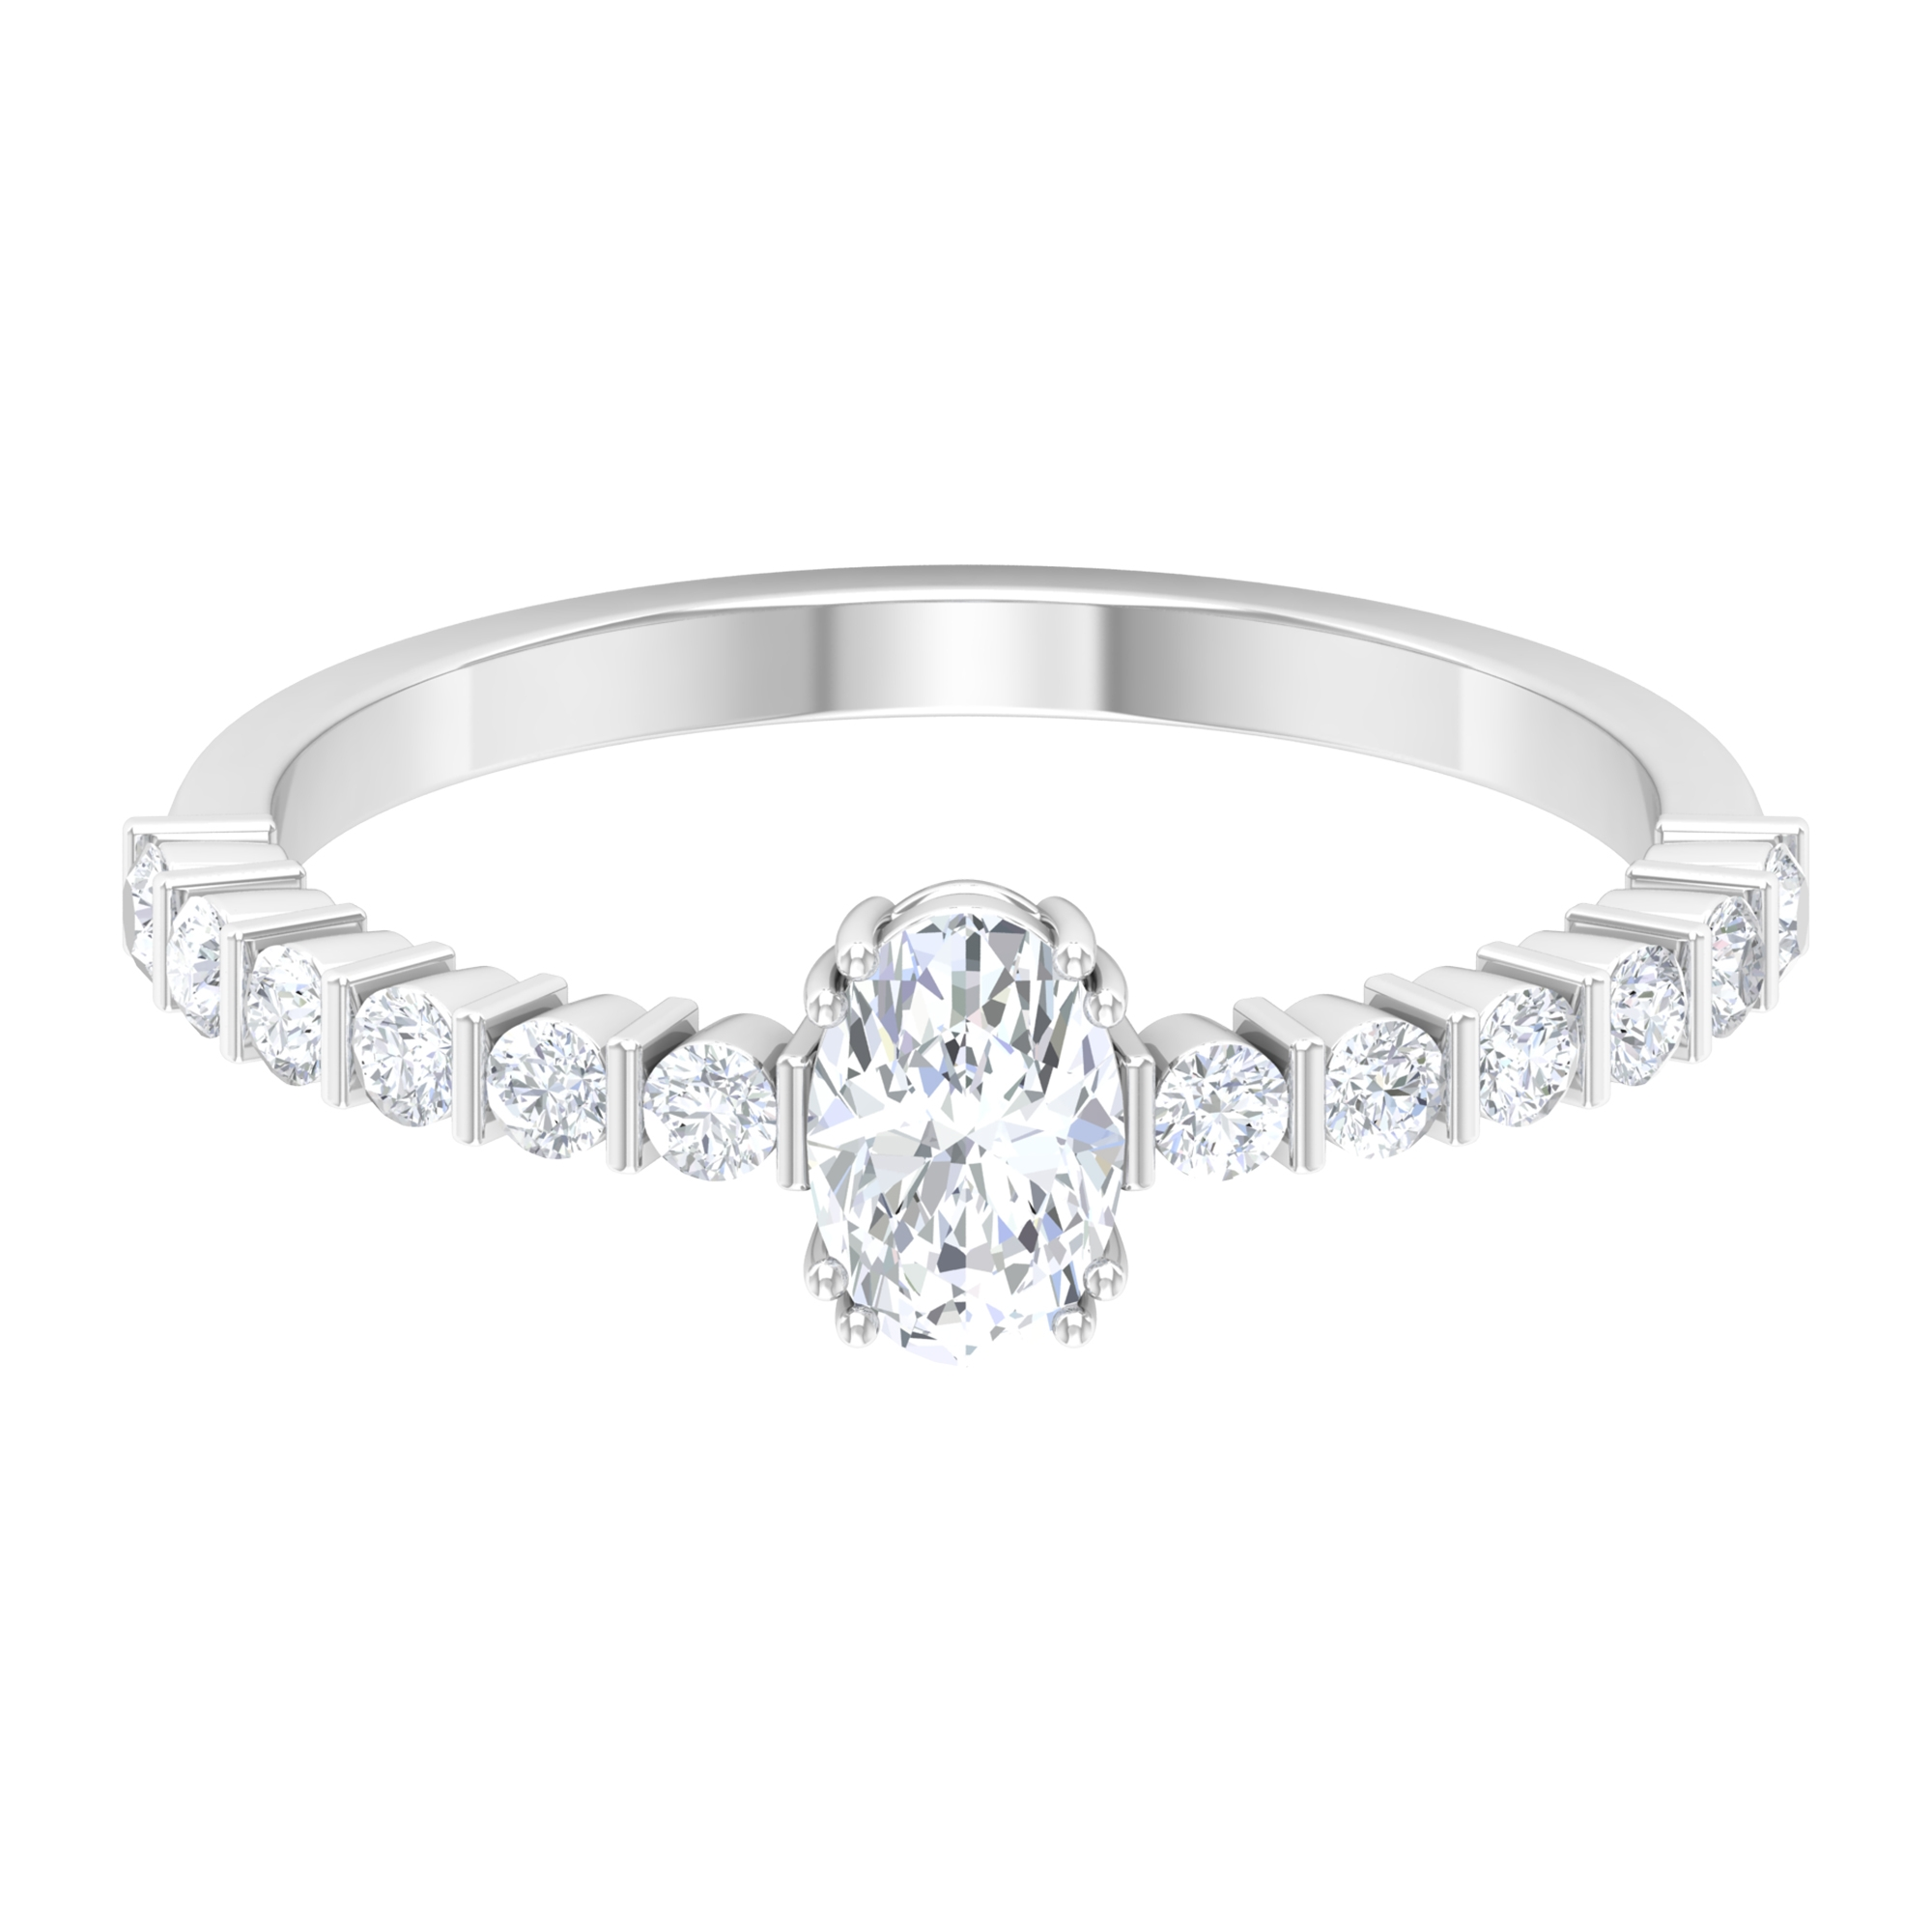 4X6 MM Oval Cut Diamond Solitaire Ring in Double Prong Set with Bar Set Side Stones